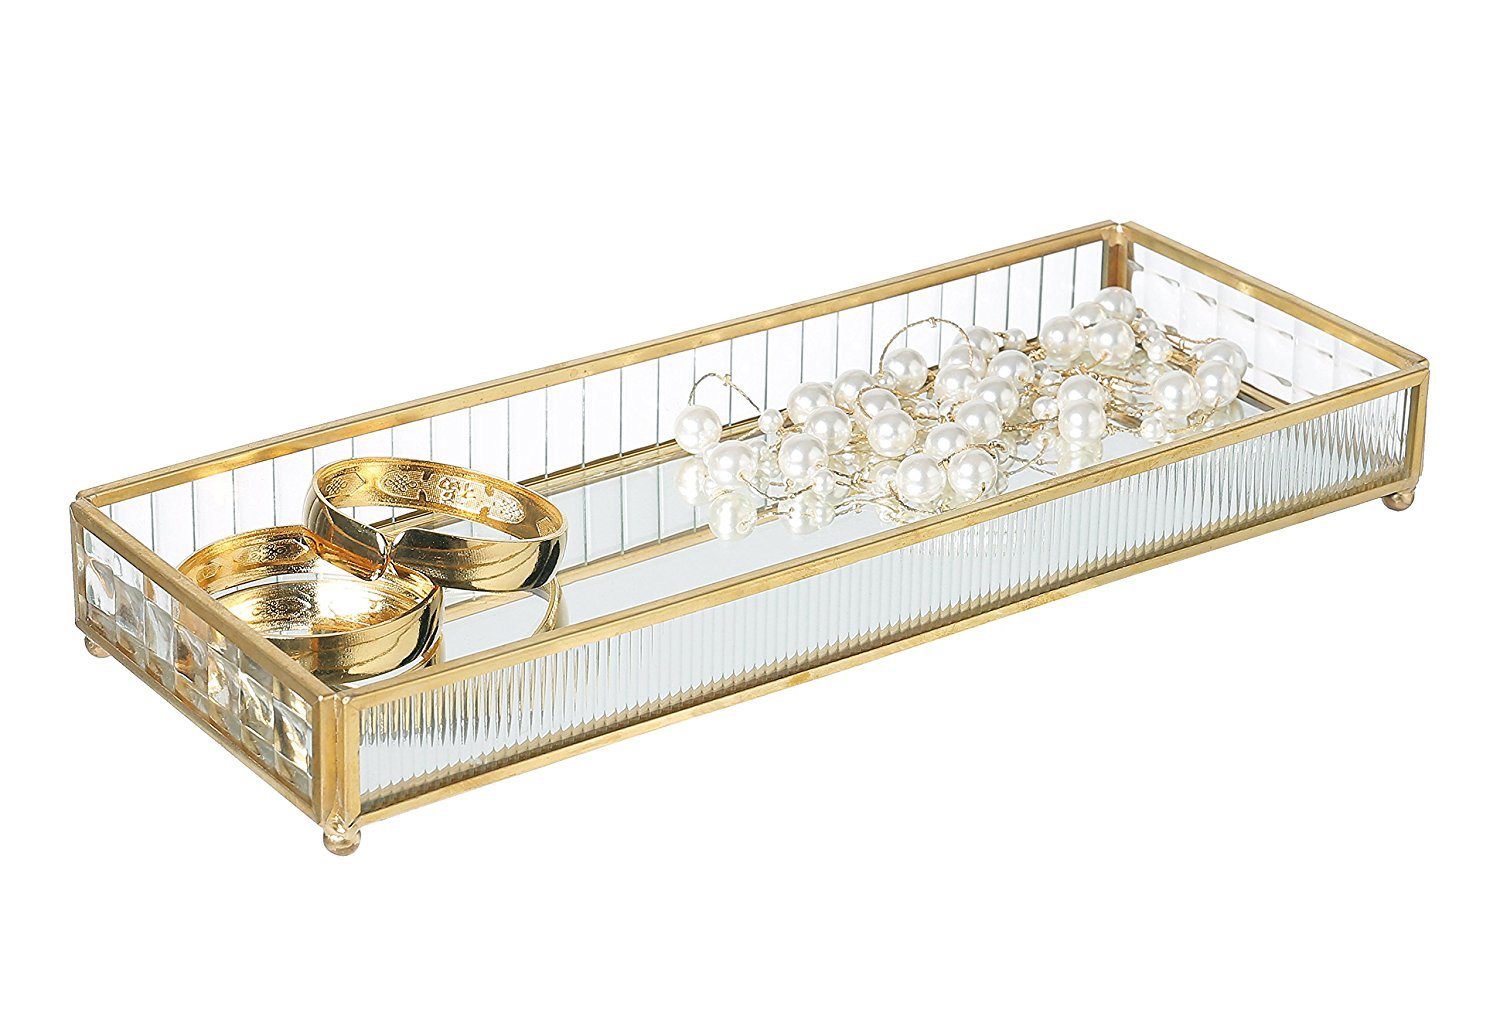 Beautiful Gold Glass Jewelry Display Tray Holder